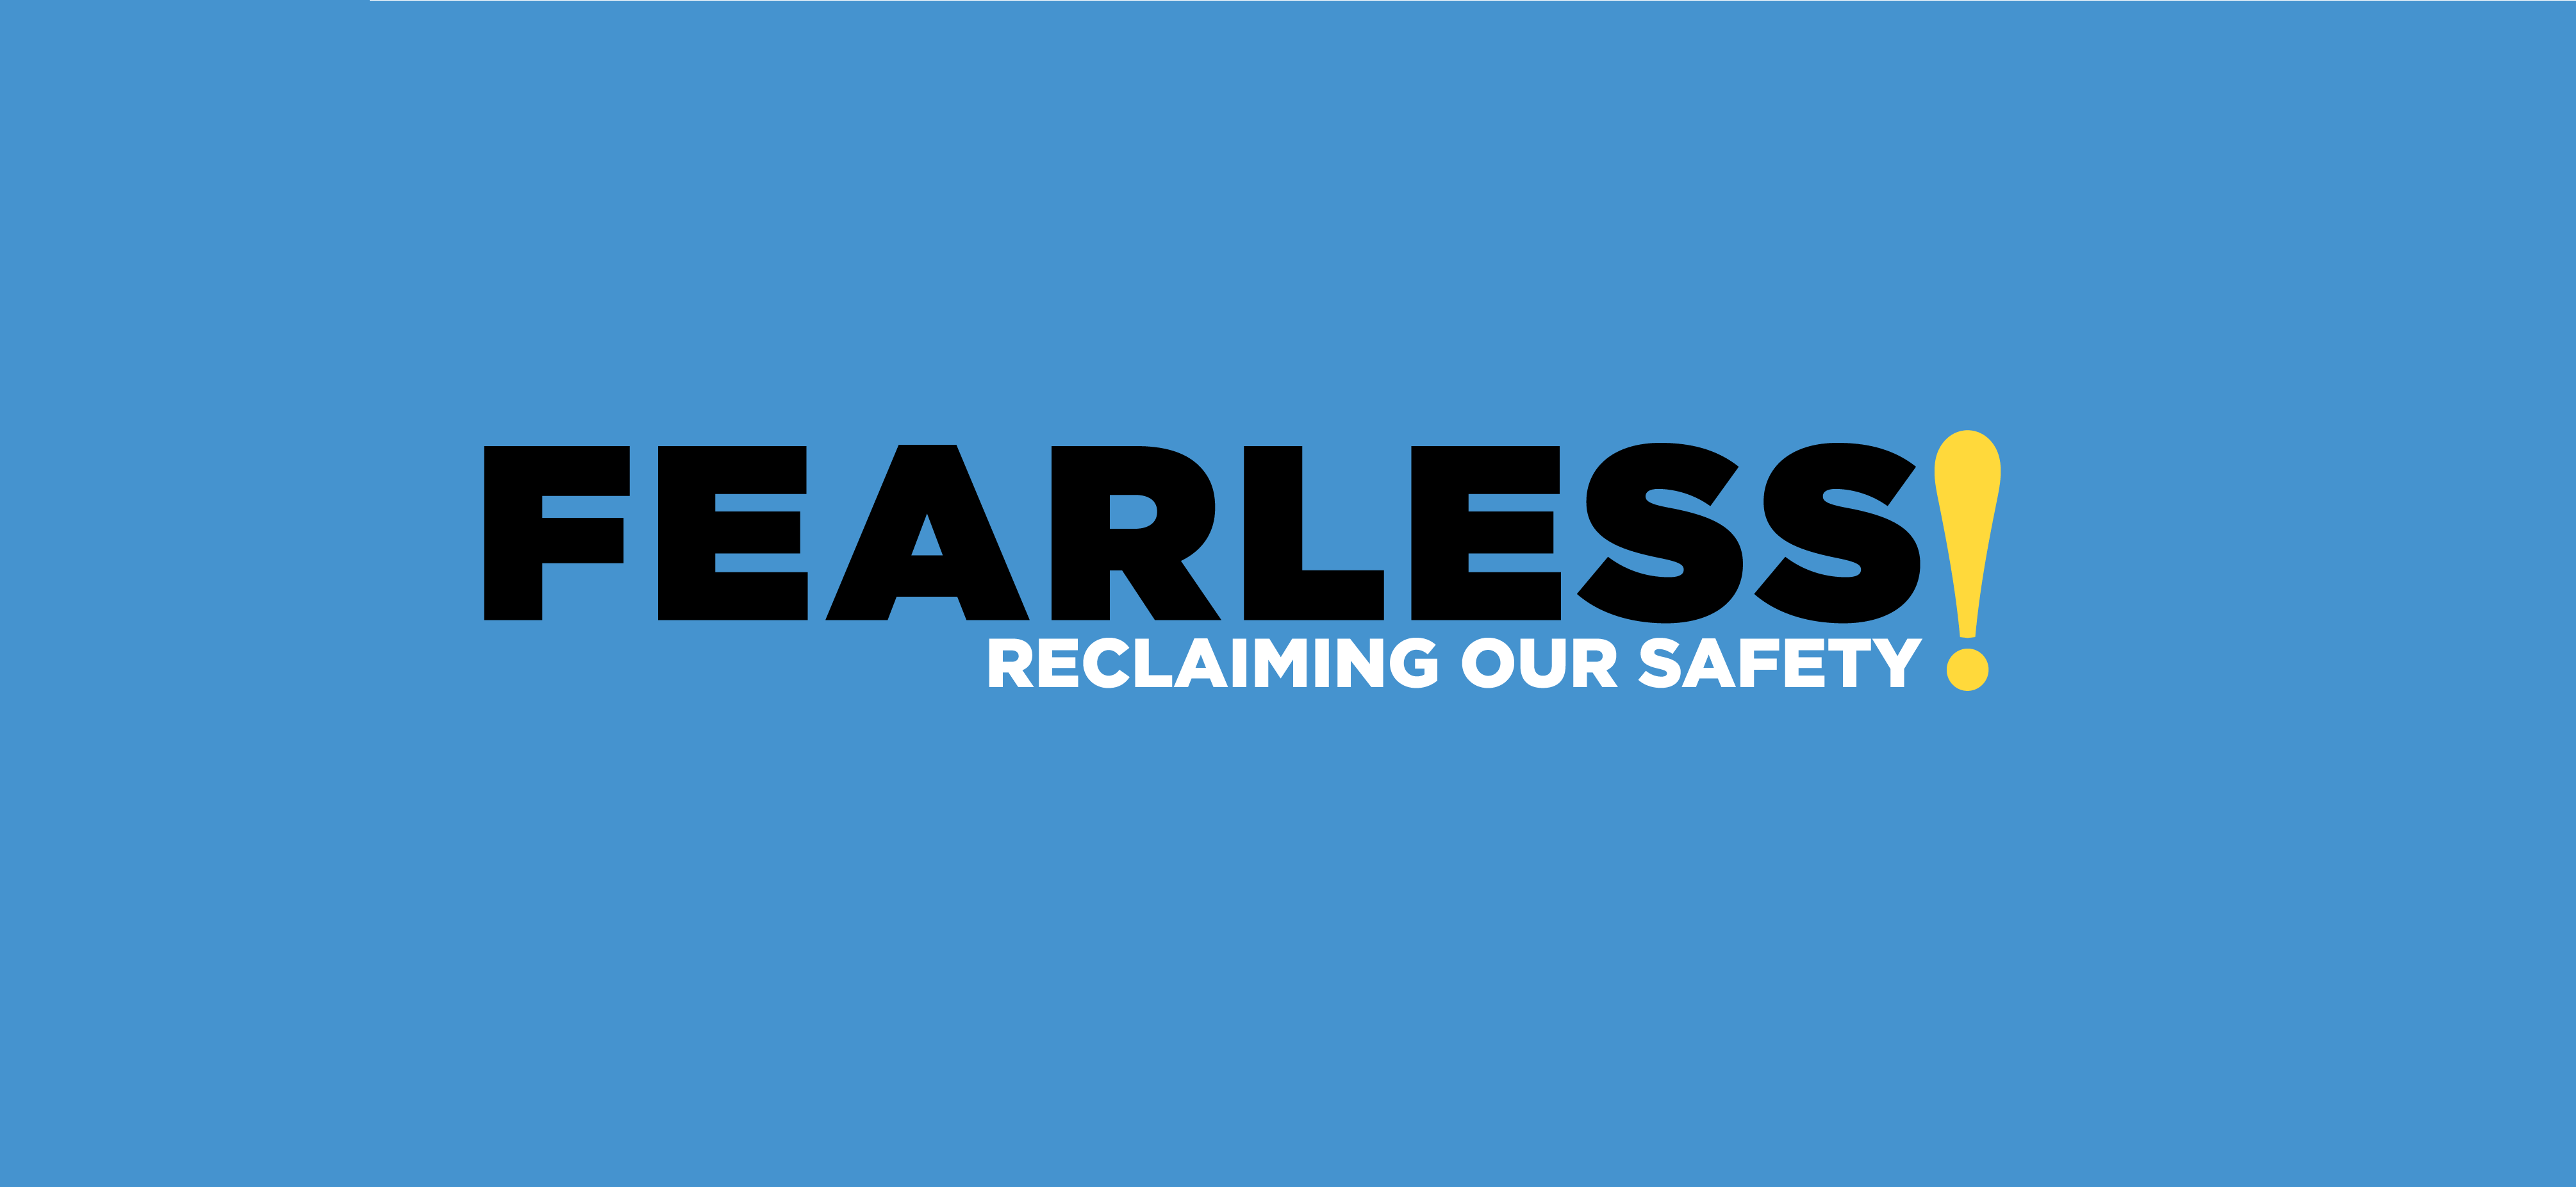 Today we become Fearless!